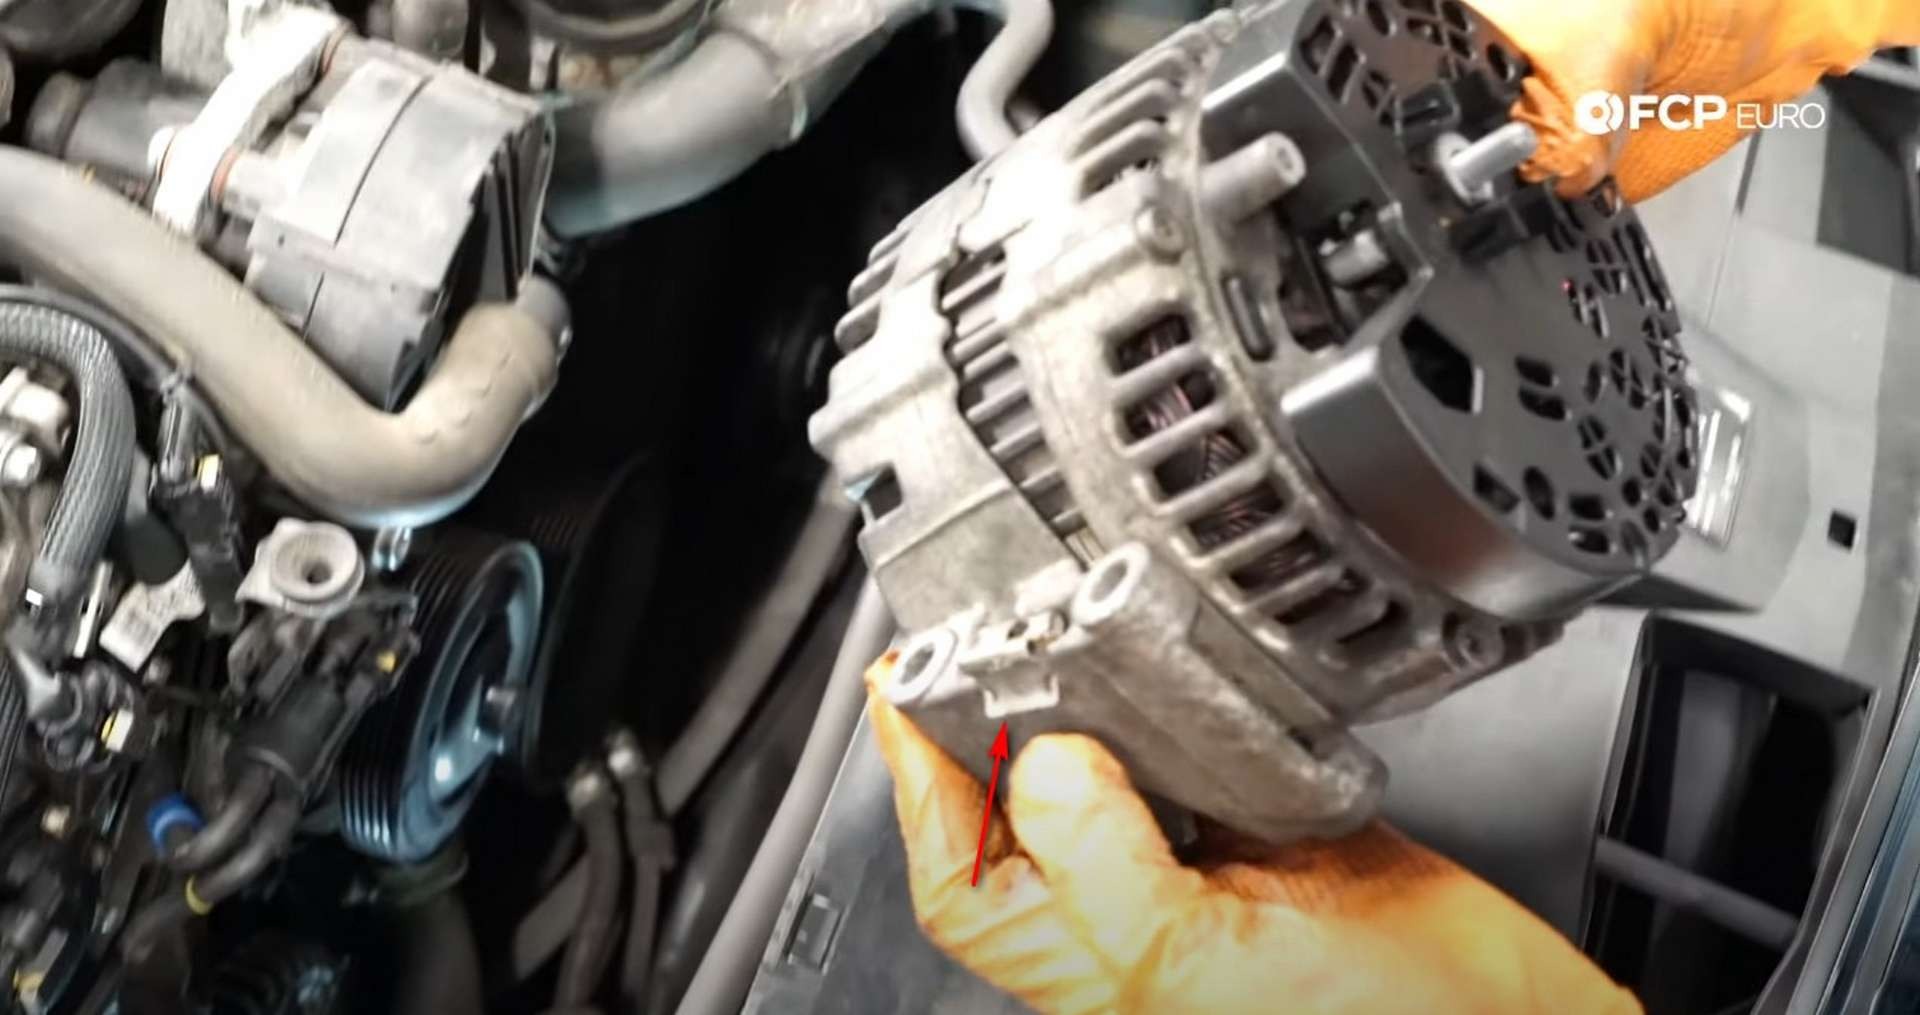 DIY Mercedes W212/204 Alternator and Drive Belt Replacement spring clip location on the old alternator